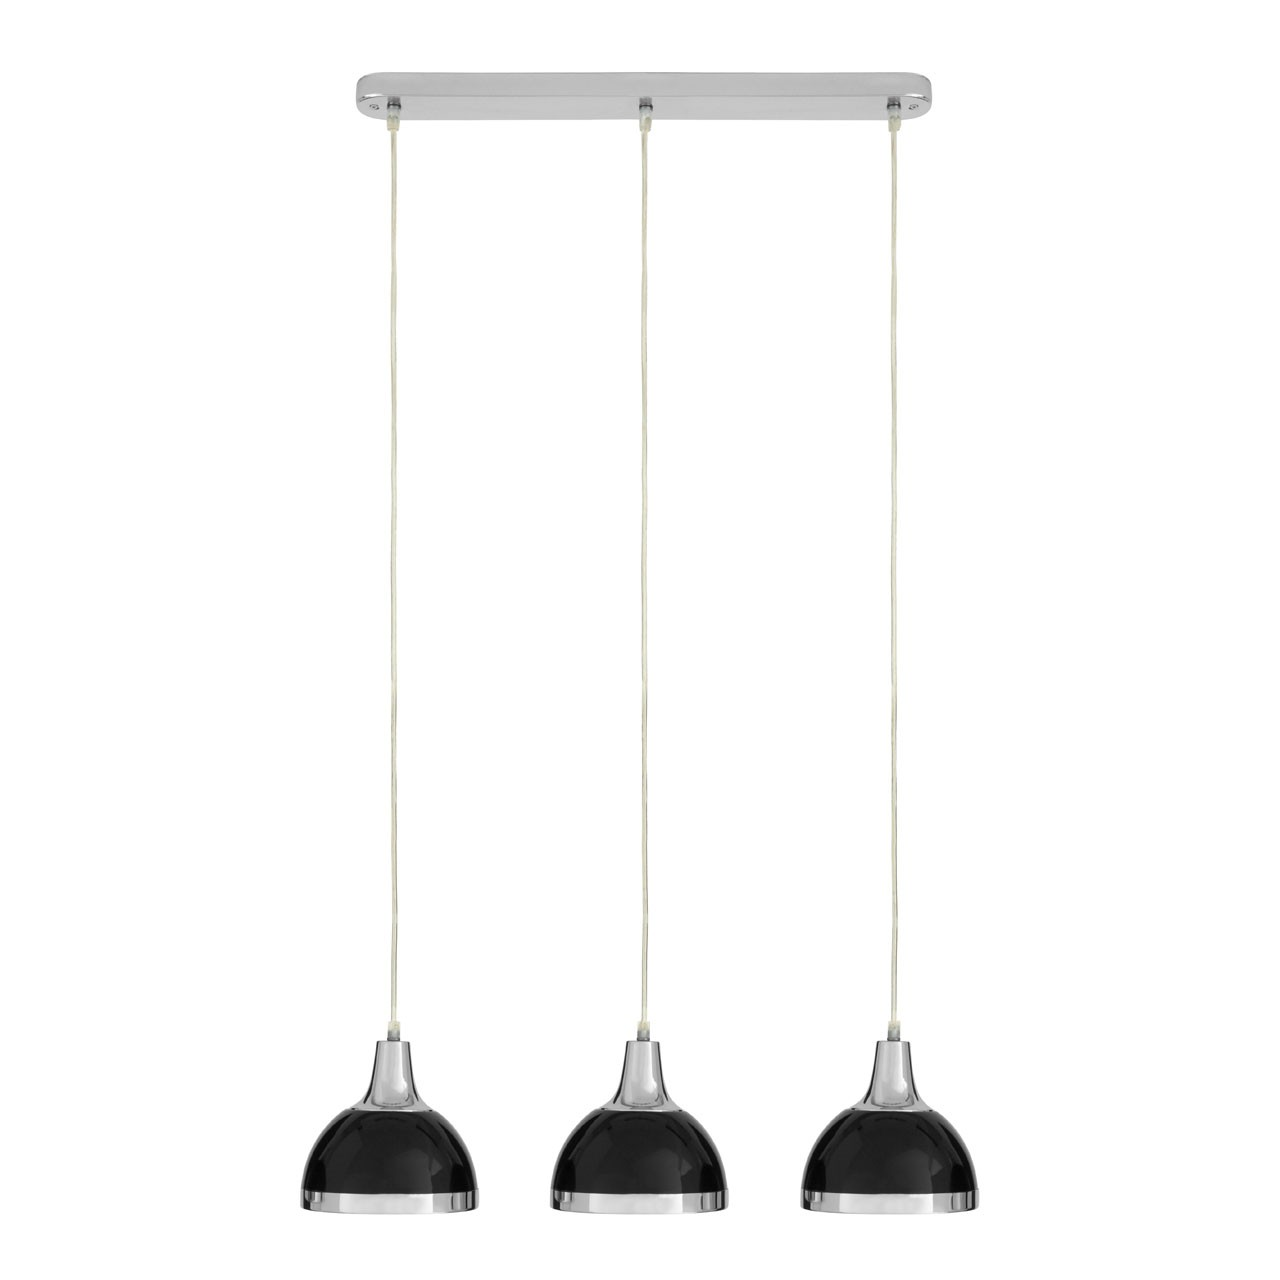 Prime Furnishing 3 Pendant Light, Black Shade & Chrome Body